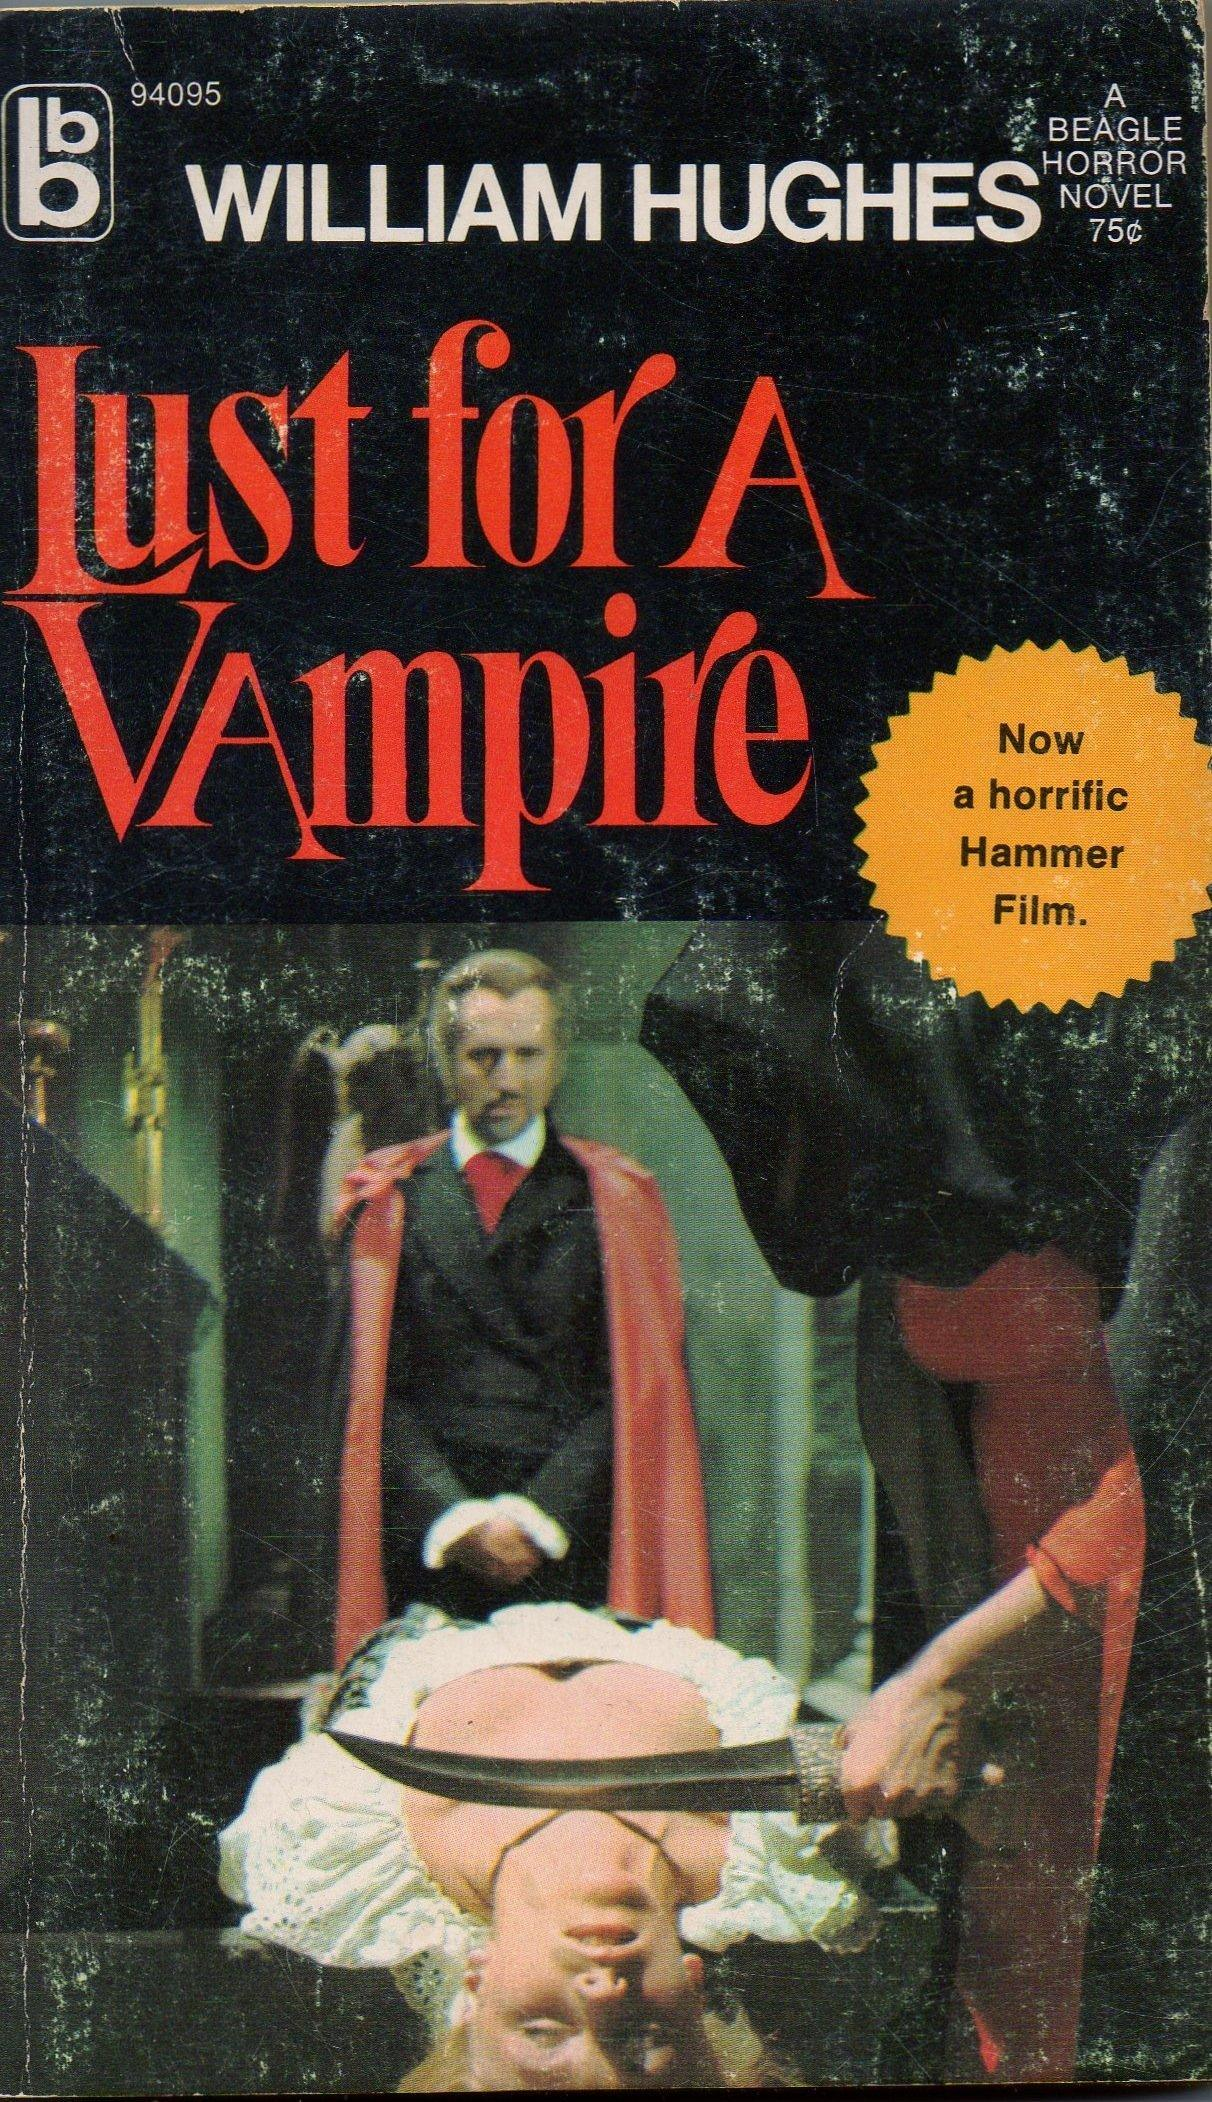 Novelisation of Lust for a Vampire